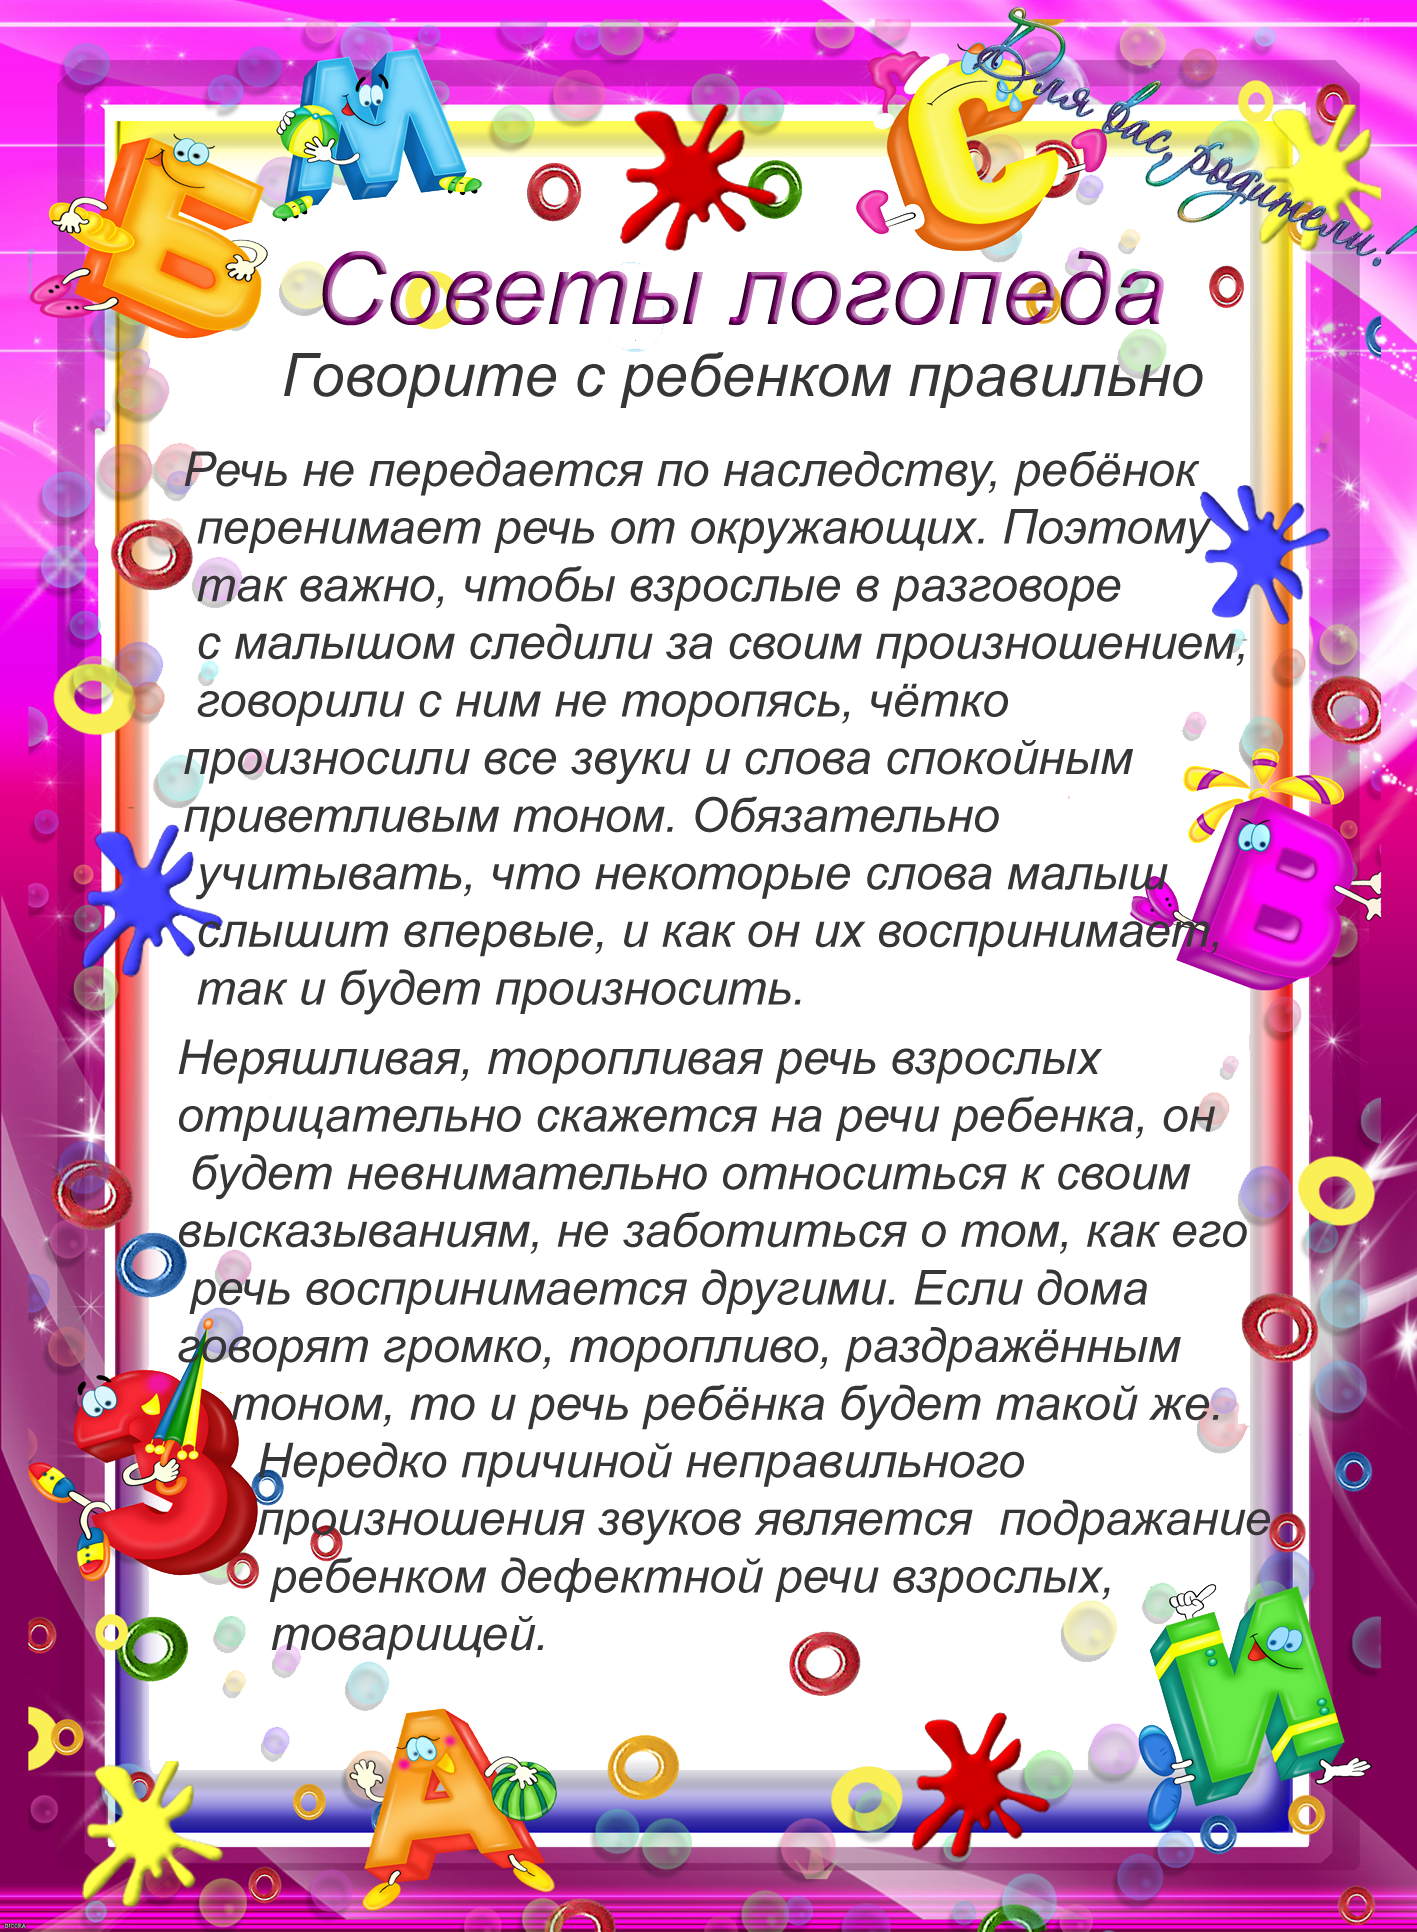 http://mdou18maykop.ru/images/phocagallery/logoped4.png